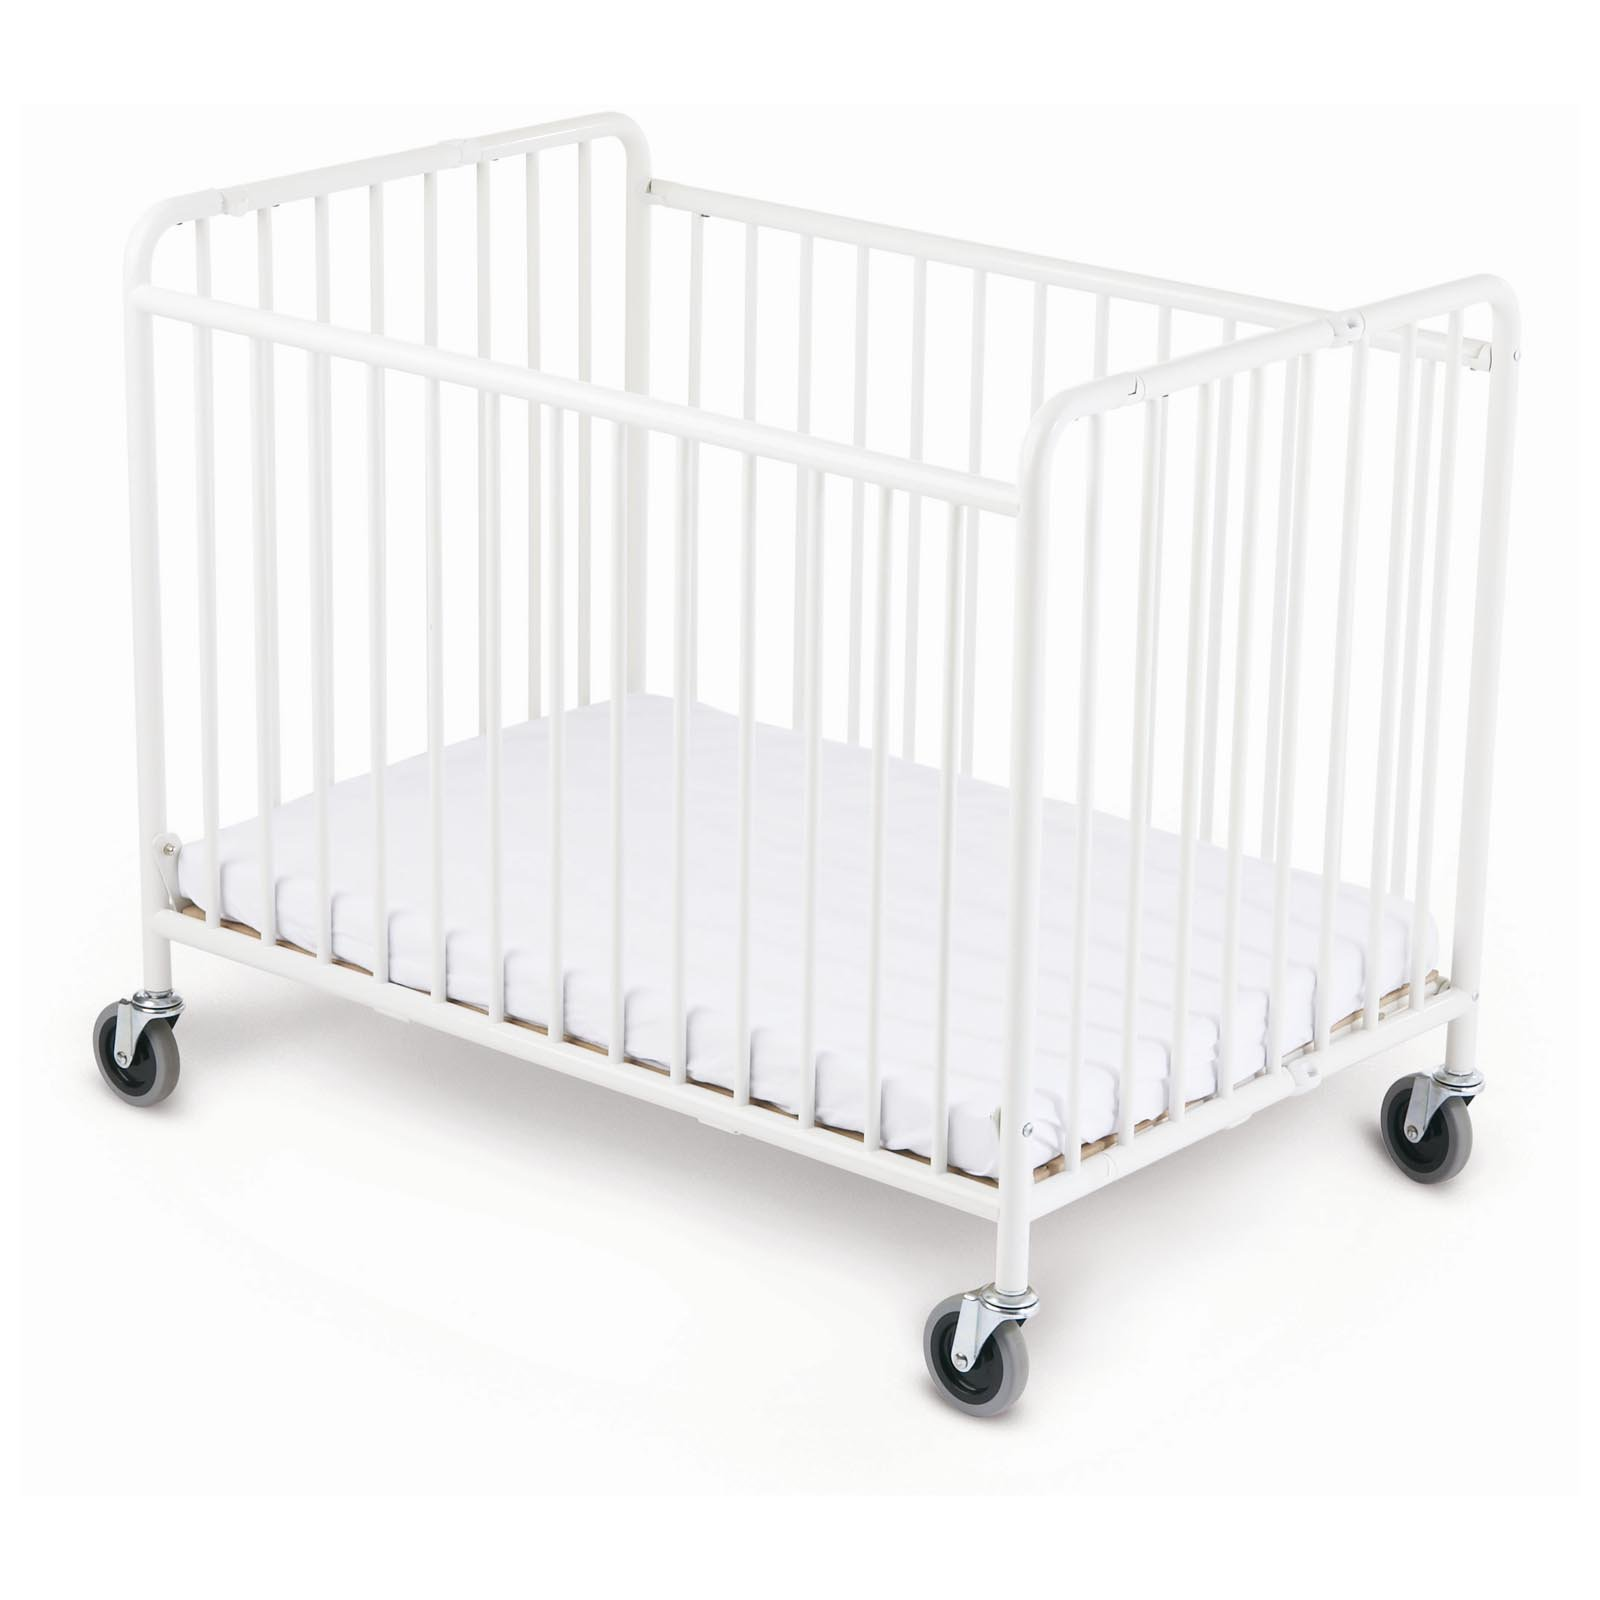 Foundations StowAway Folding Compact Size Crib with Mattress